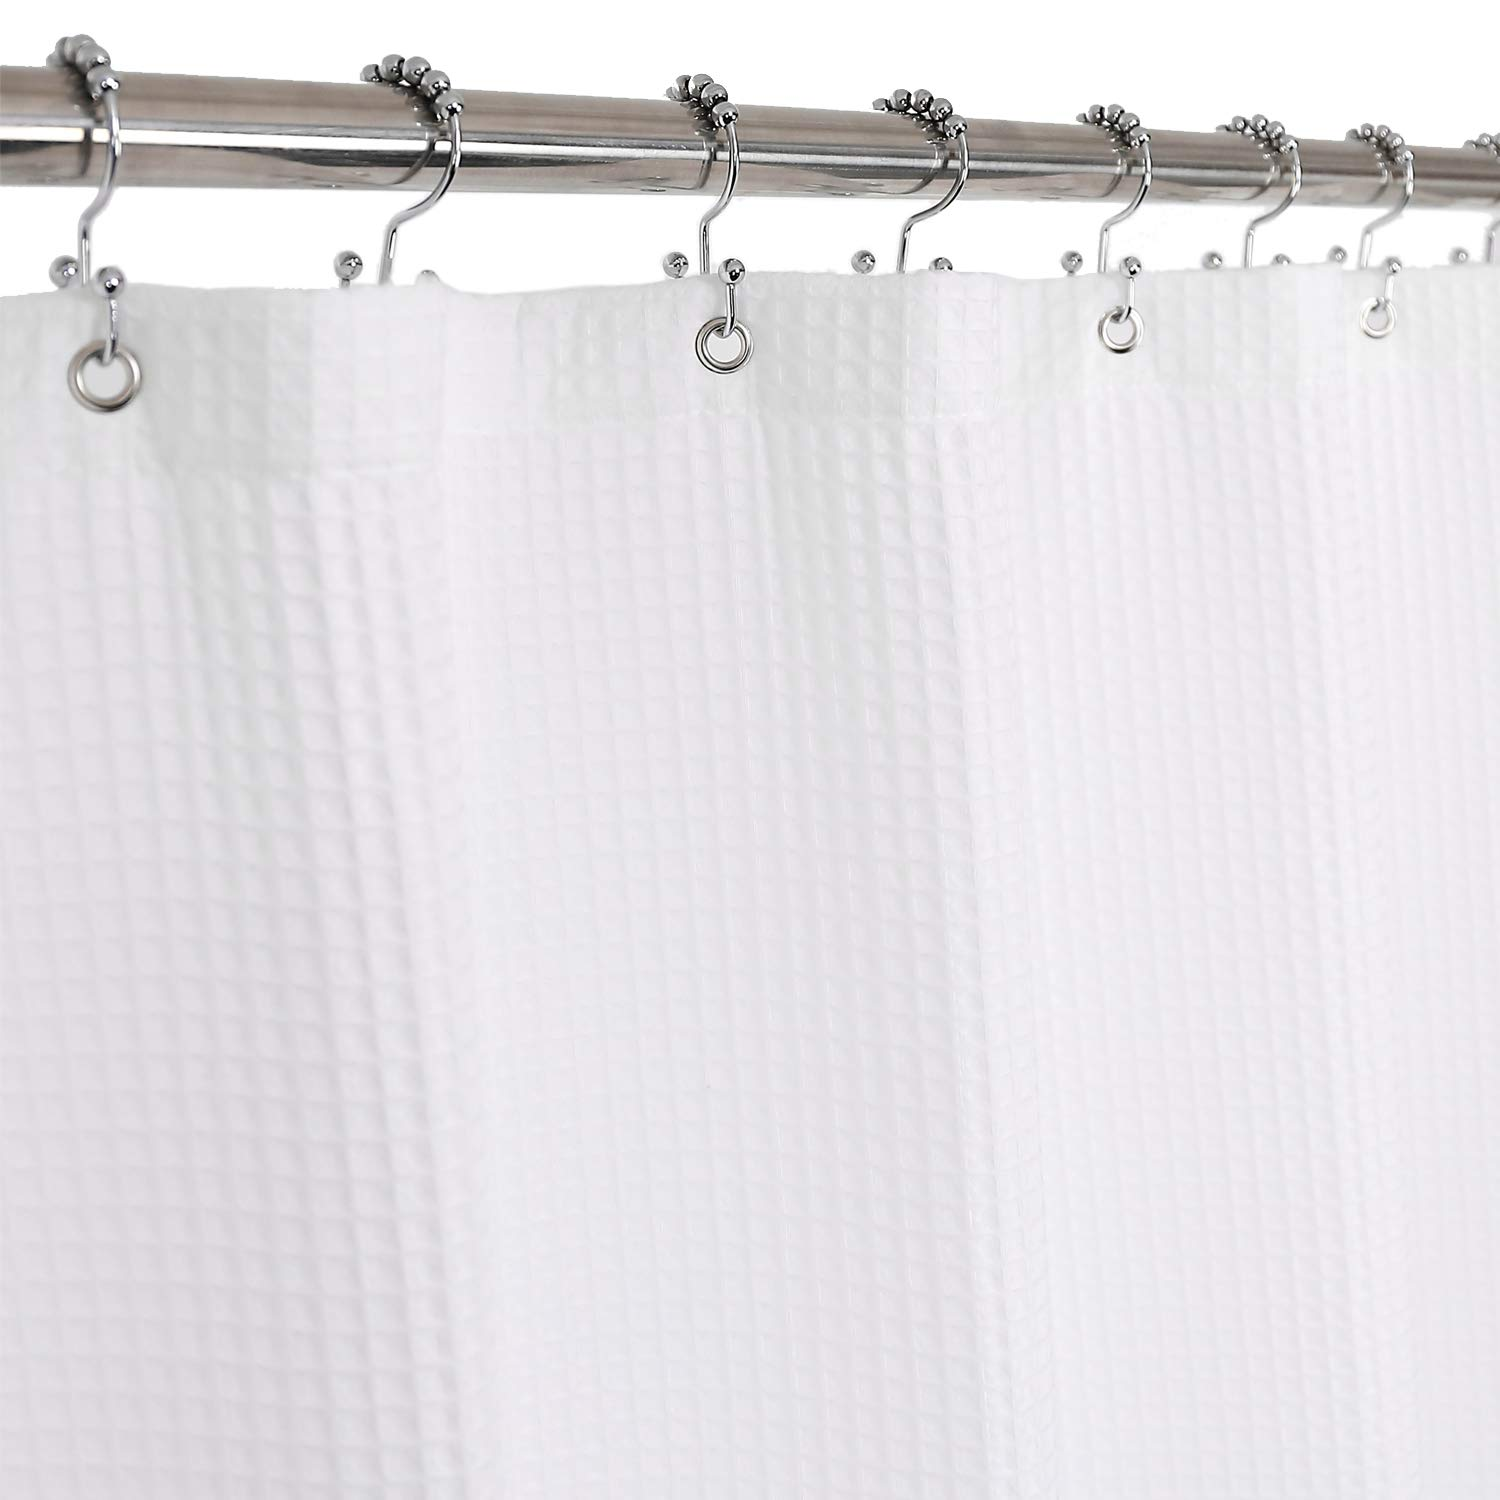 Barossa Design Cotton Shower Curtain Honeycomb Waffle Weave, Hotel Collection, Spa, Washable, White, 72 x 72 inch by Barossa Design